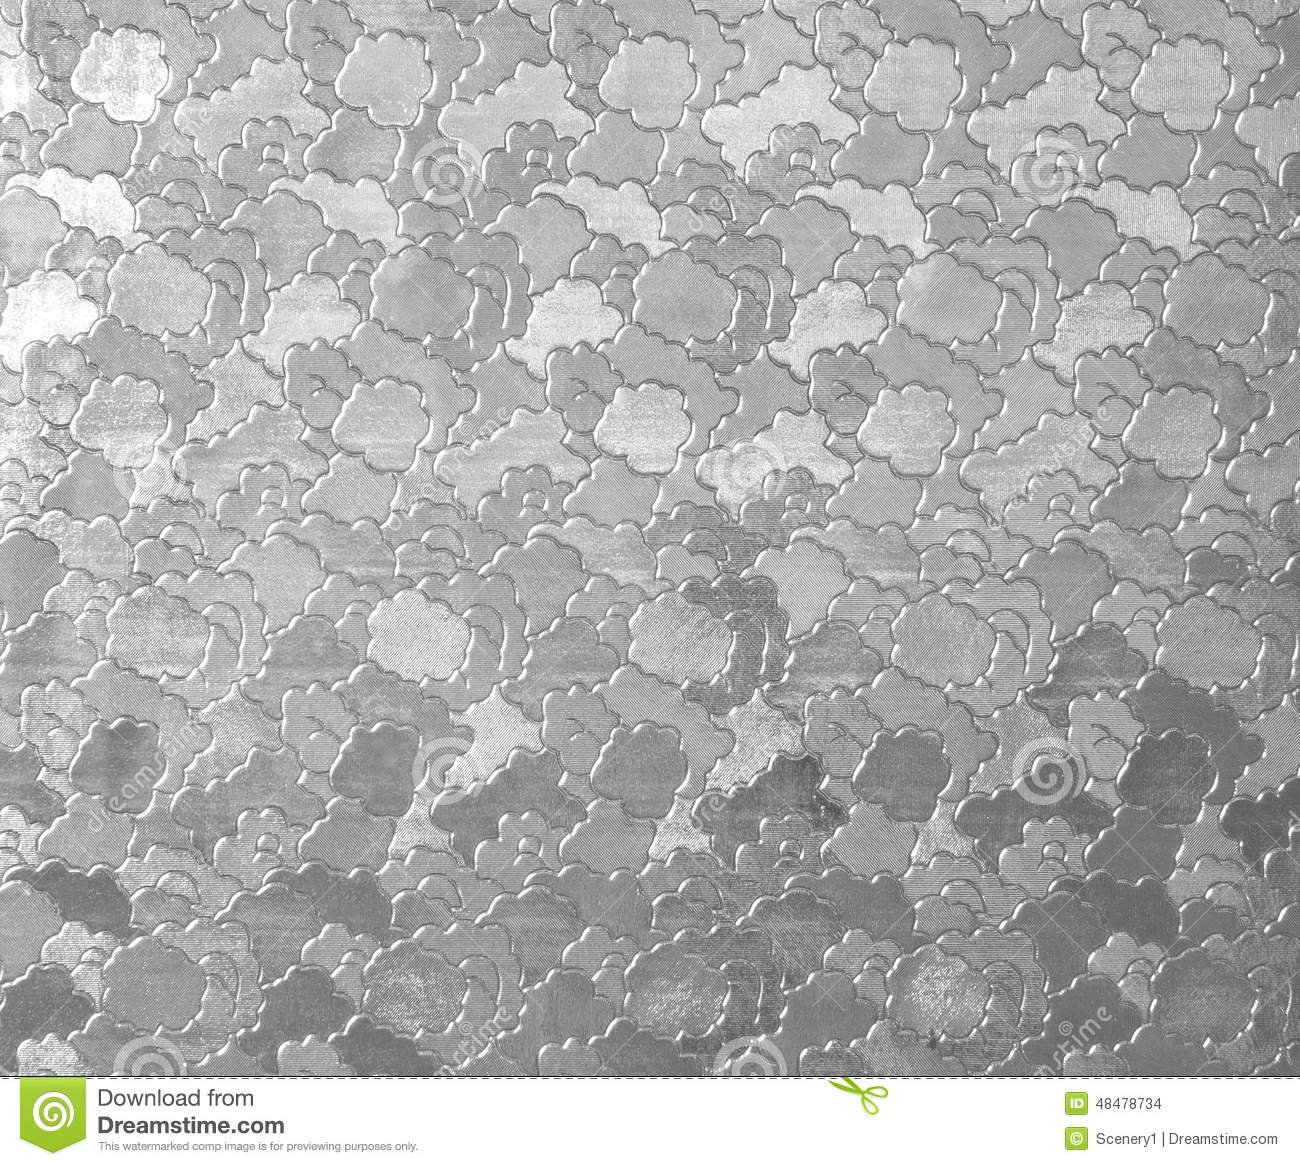 Opaque Glass Background Texture Stock Photo - Image: 48478734